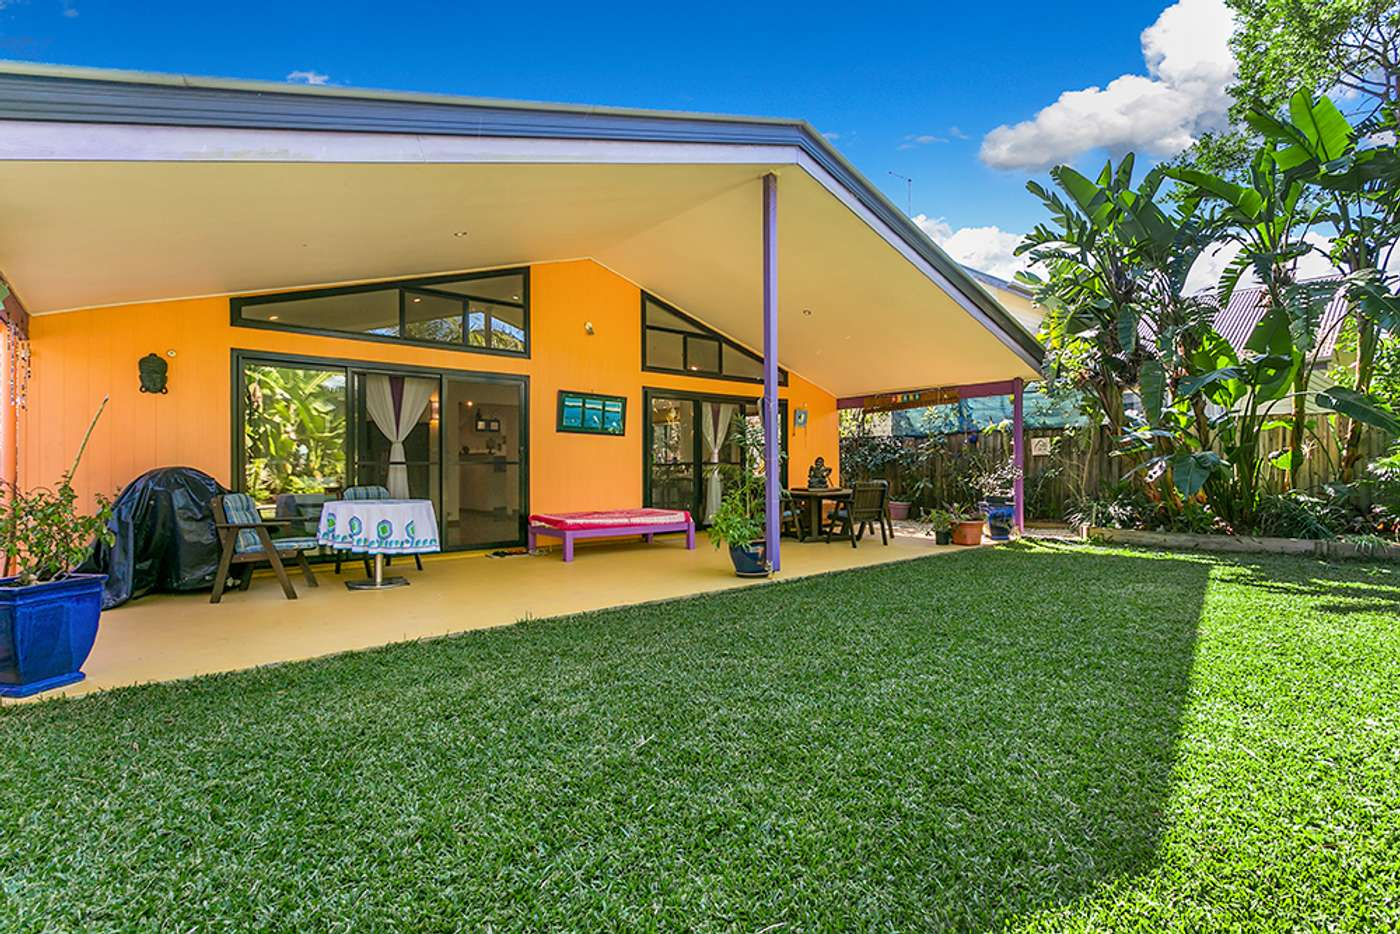 Main view of Homely house listing, 10 Muli Muli Avenue, Ocean Shores NSW 2483